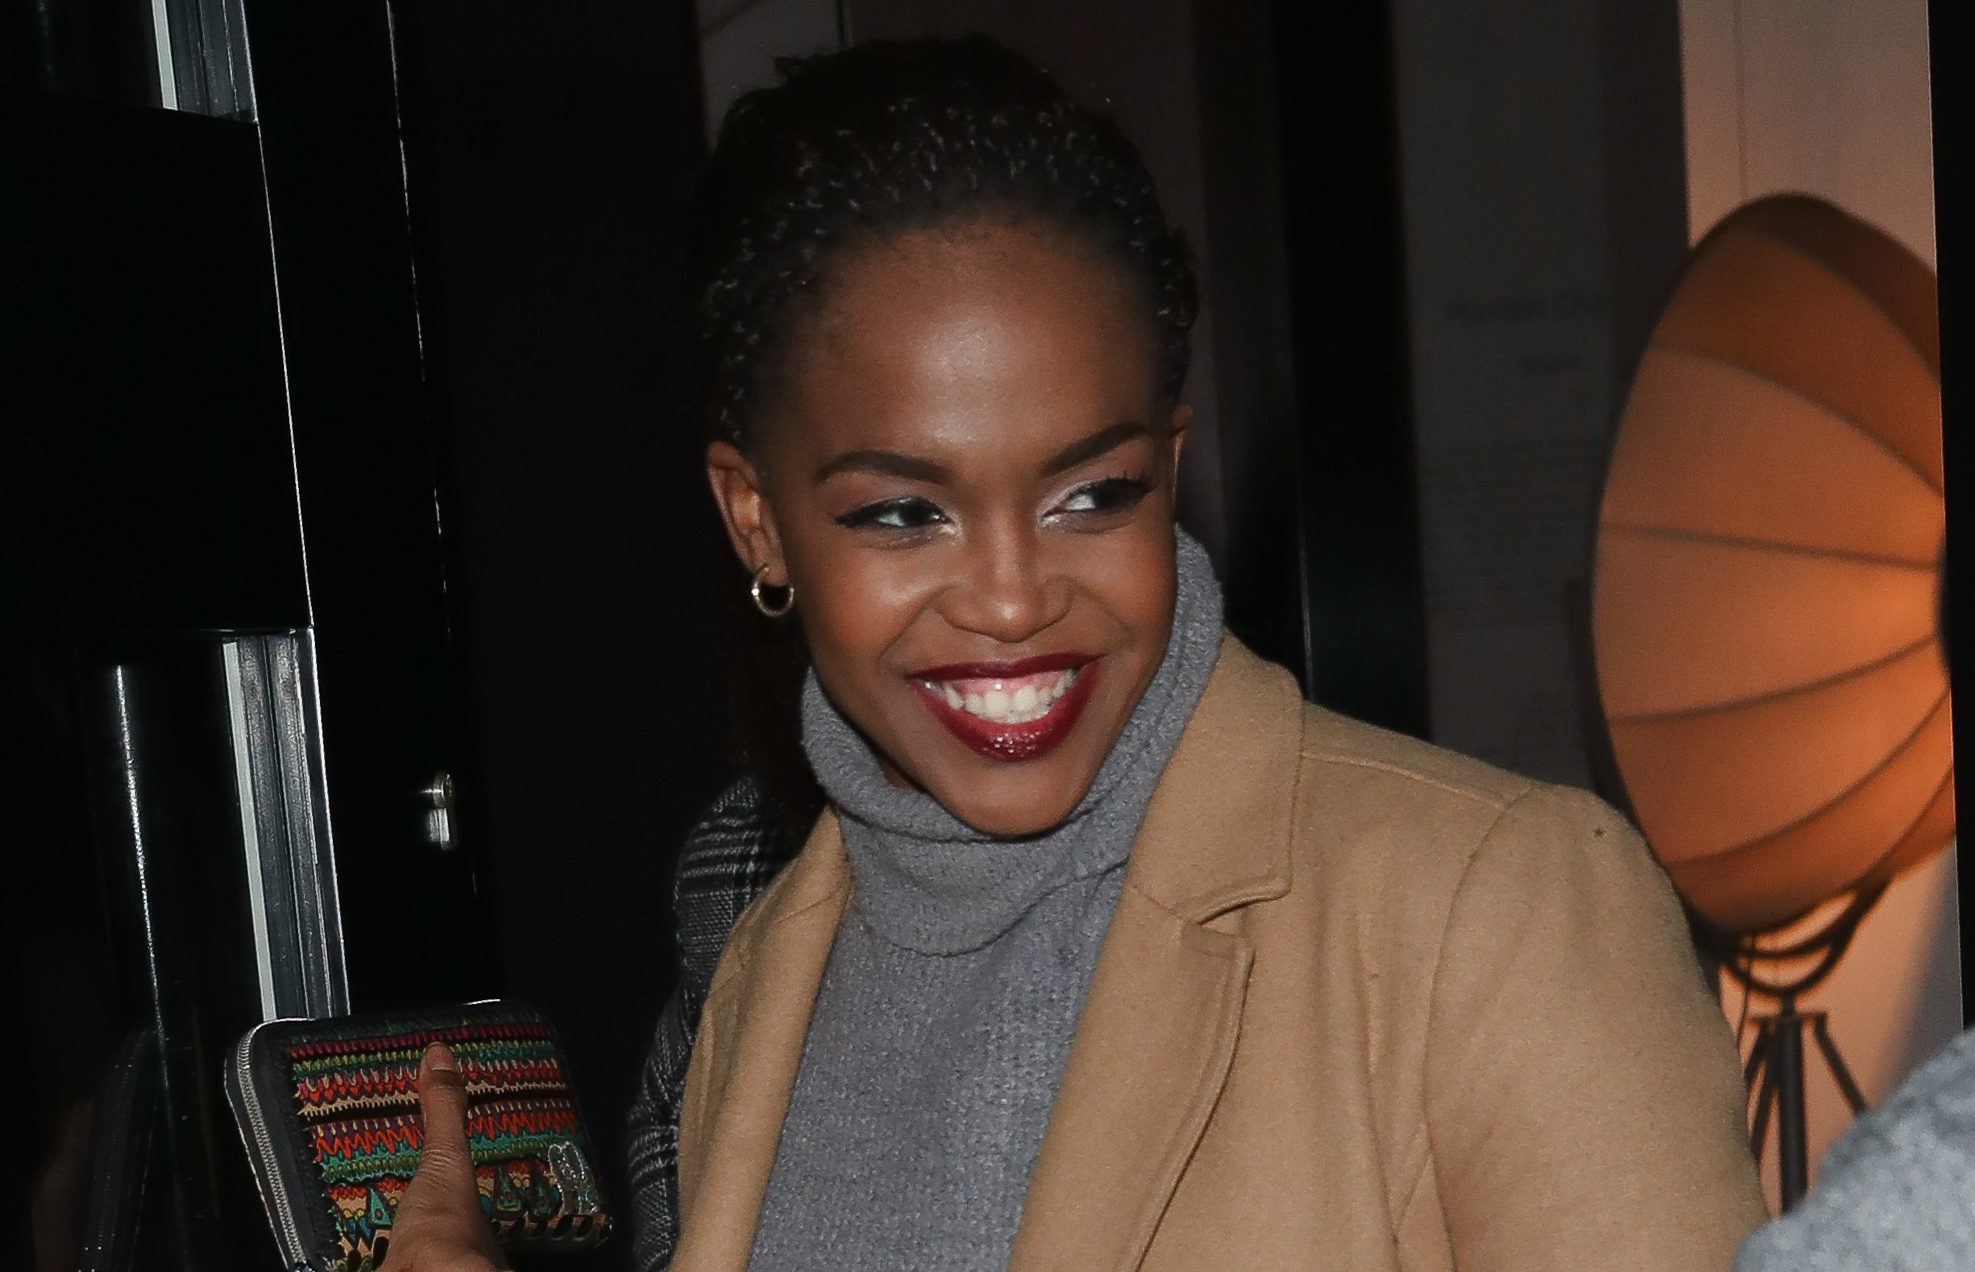 Strictly's Oti Mabuse enjoys night out with former partners Kelvin Fletcher and Danny Mac